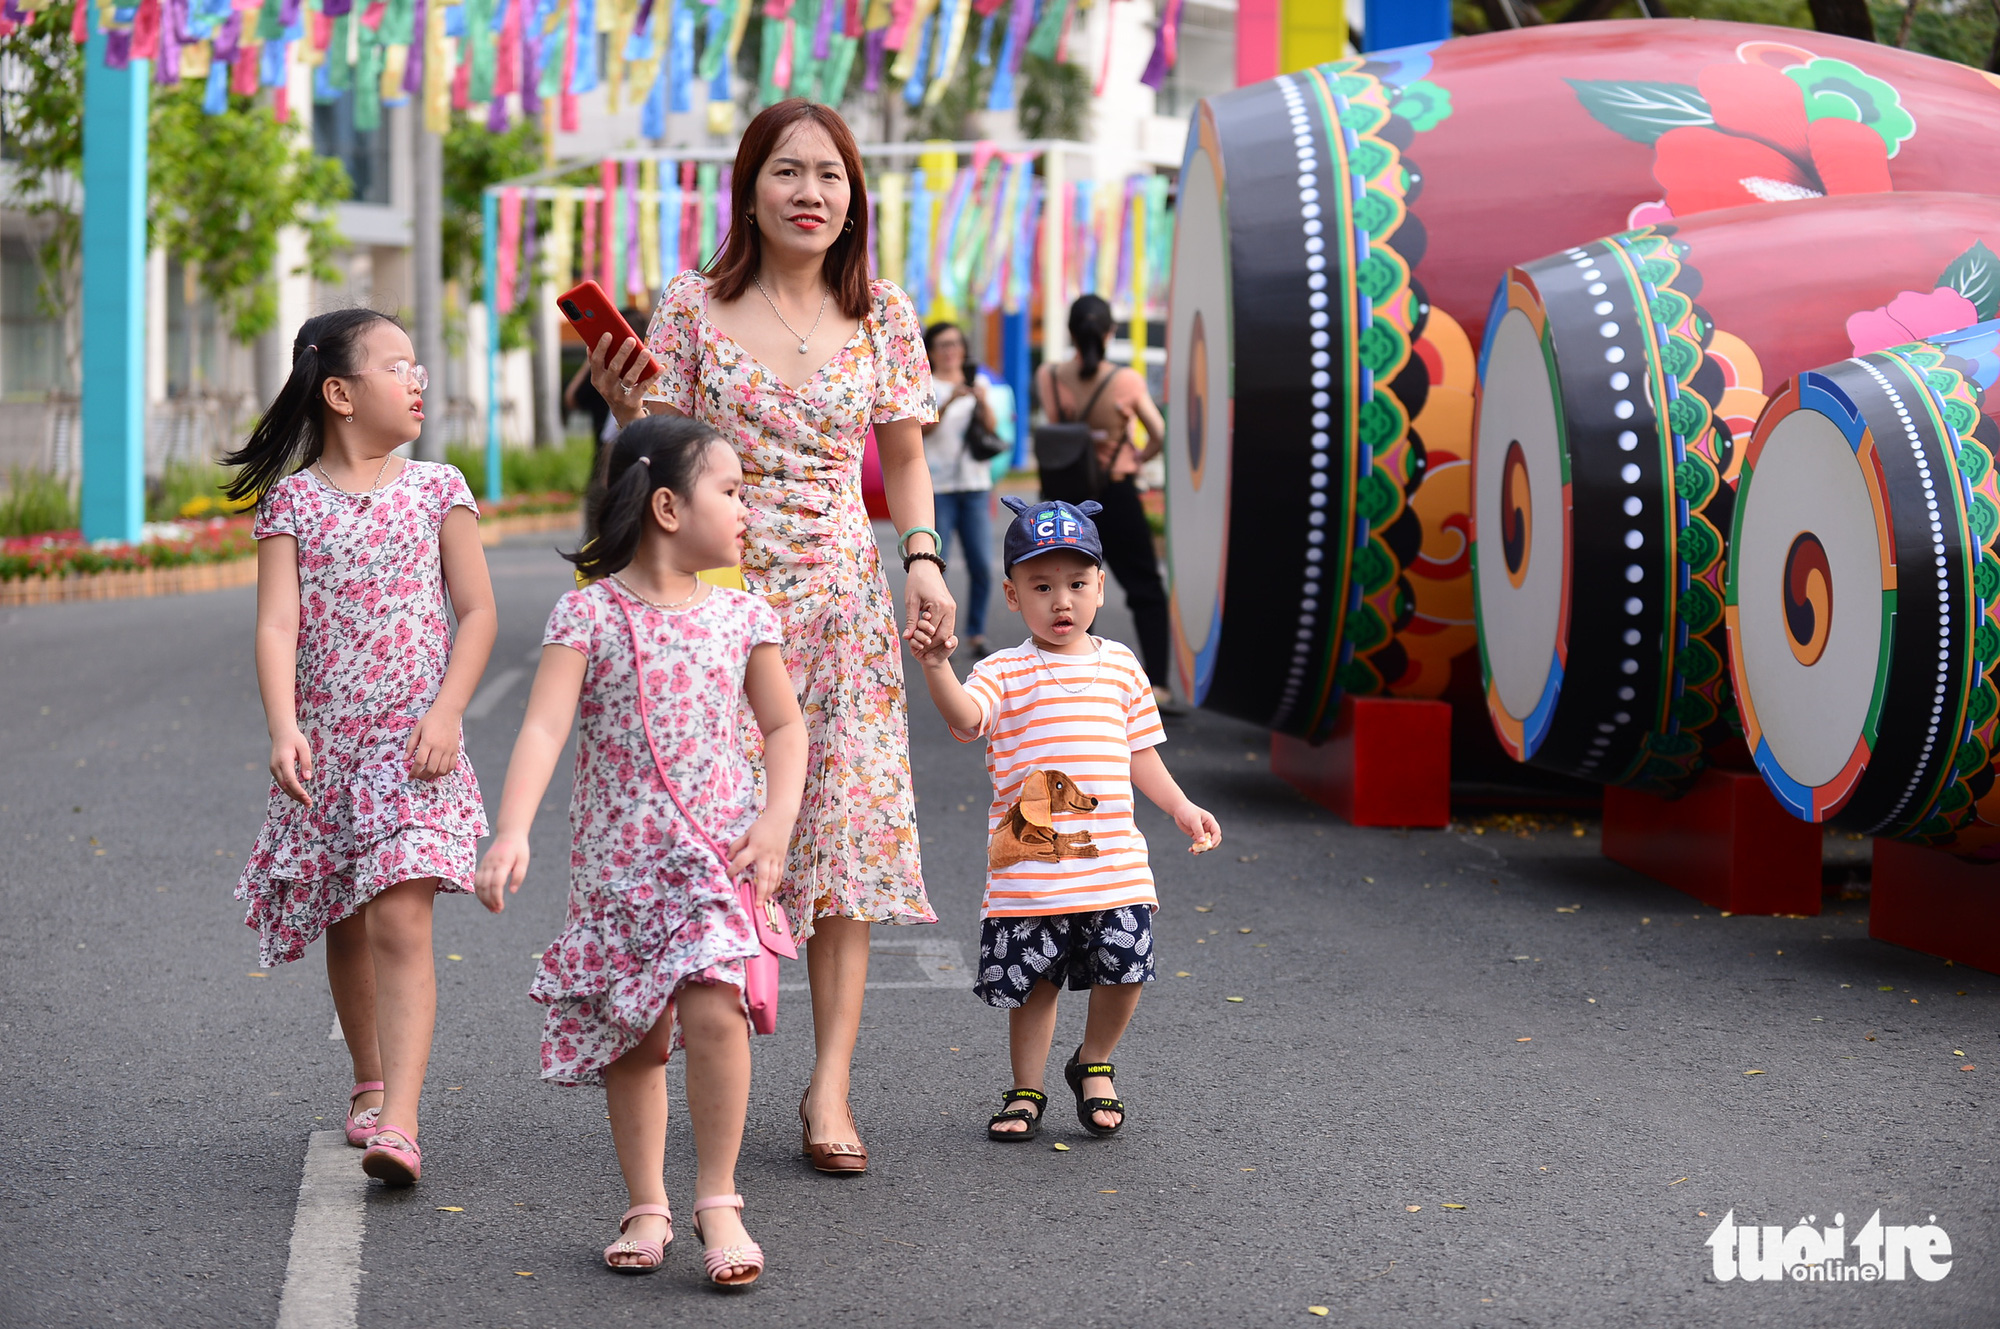 Visitors walk past the South Korean setting at the Phu My Hung Spring Flowers Festival2021 in District 7, Ho Chi Minh City, February 4, 2021. Photo: Quang Dinh / Tuoi Tre